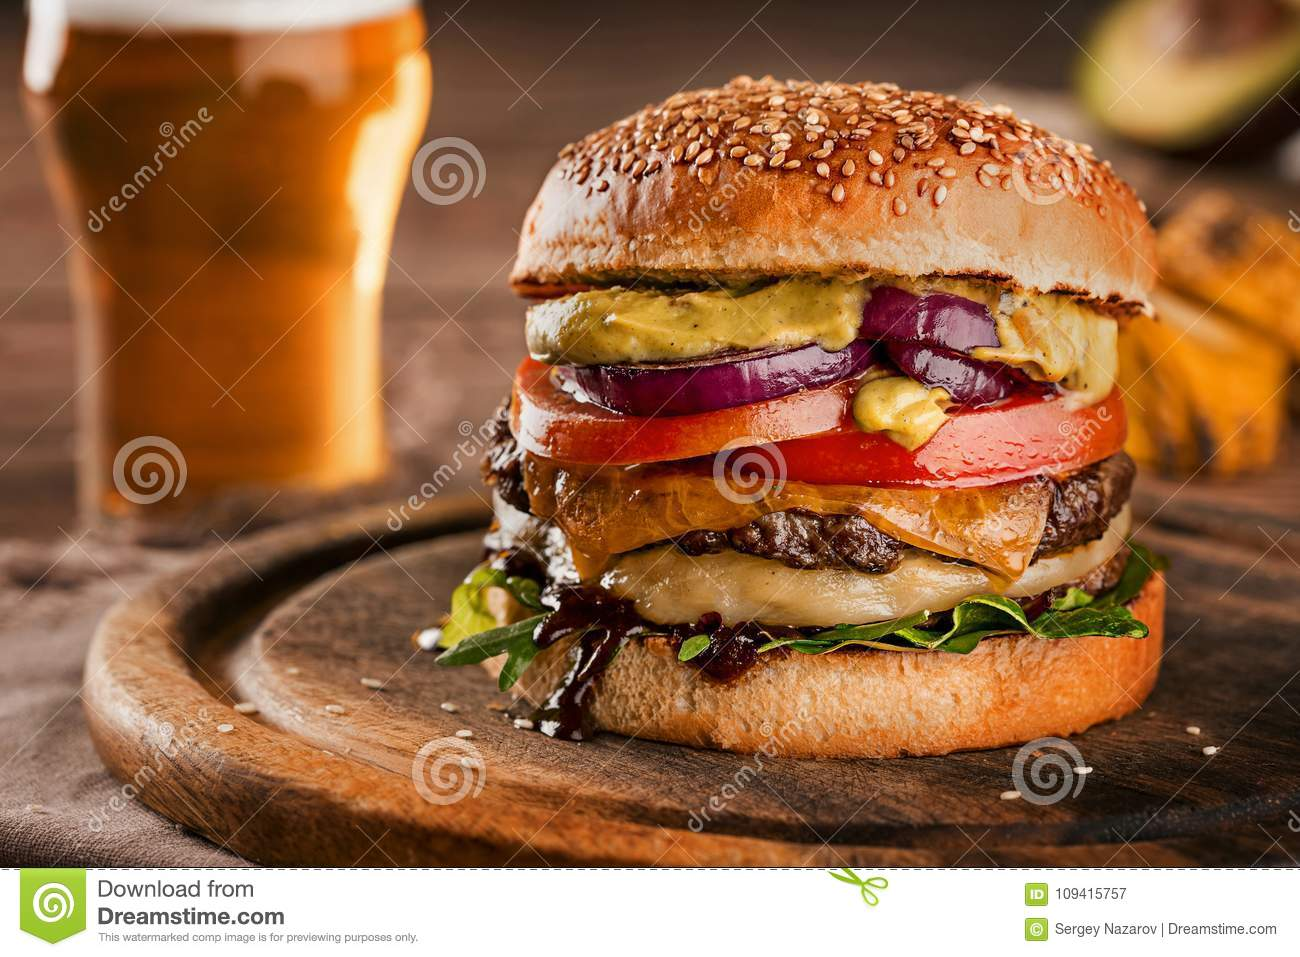 Cheeseburger, made from rye bun with tomato slice and melted cheese on a roasted beef, and lettuce leaf on a wooden